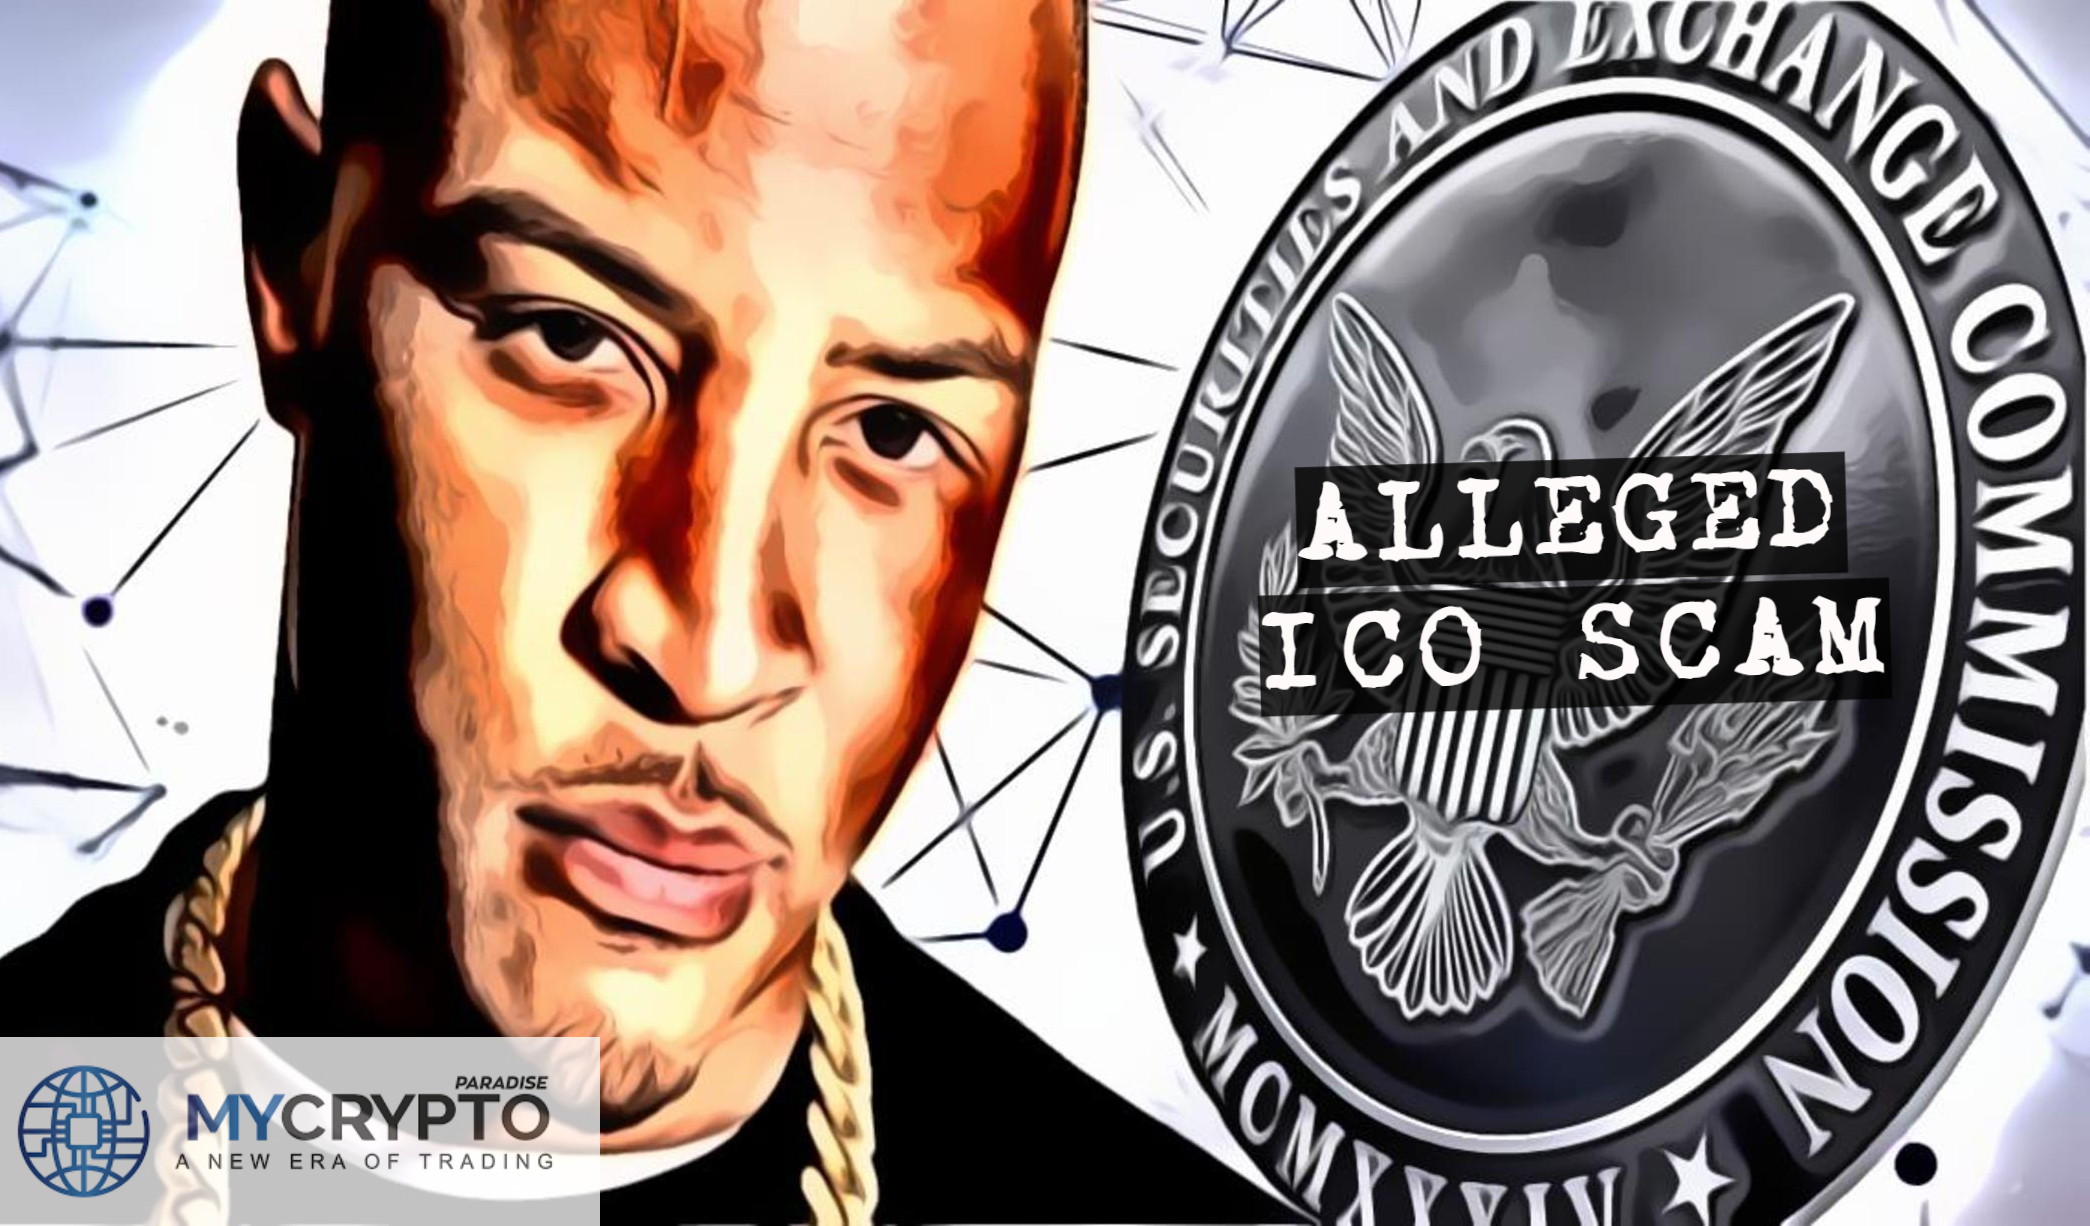 SEC Fines Rapper T.I. $75,000 Over Alleged ICO Scam